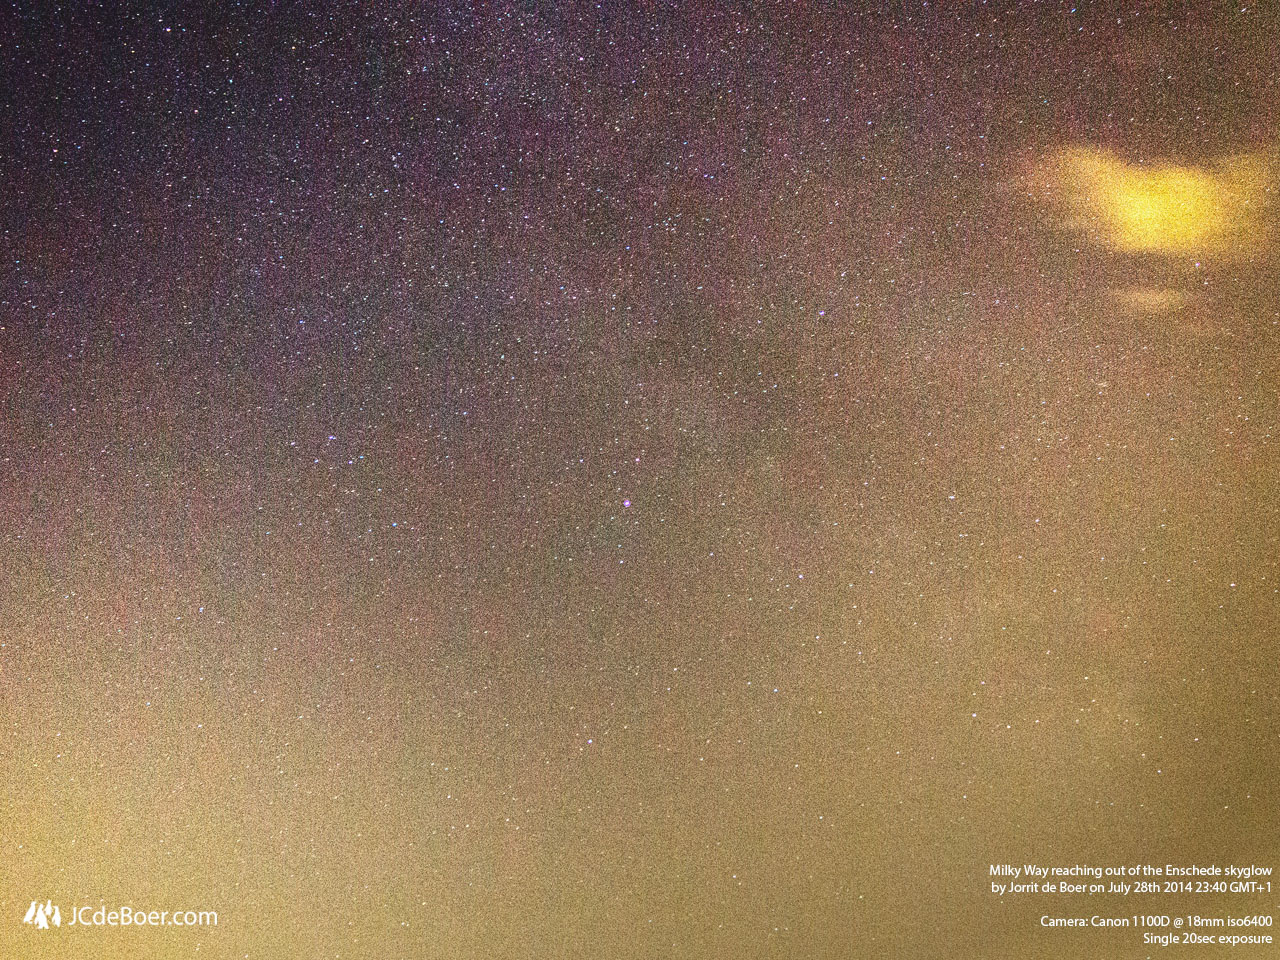 My Astrophotography Hobby Jcdeboer Com